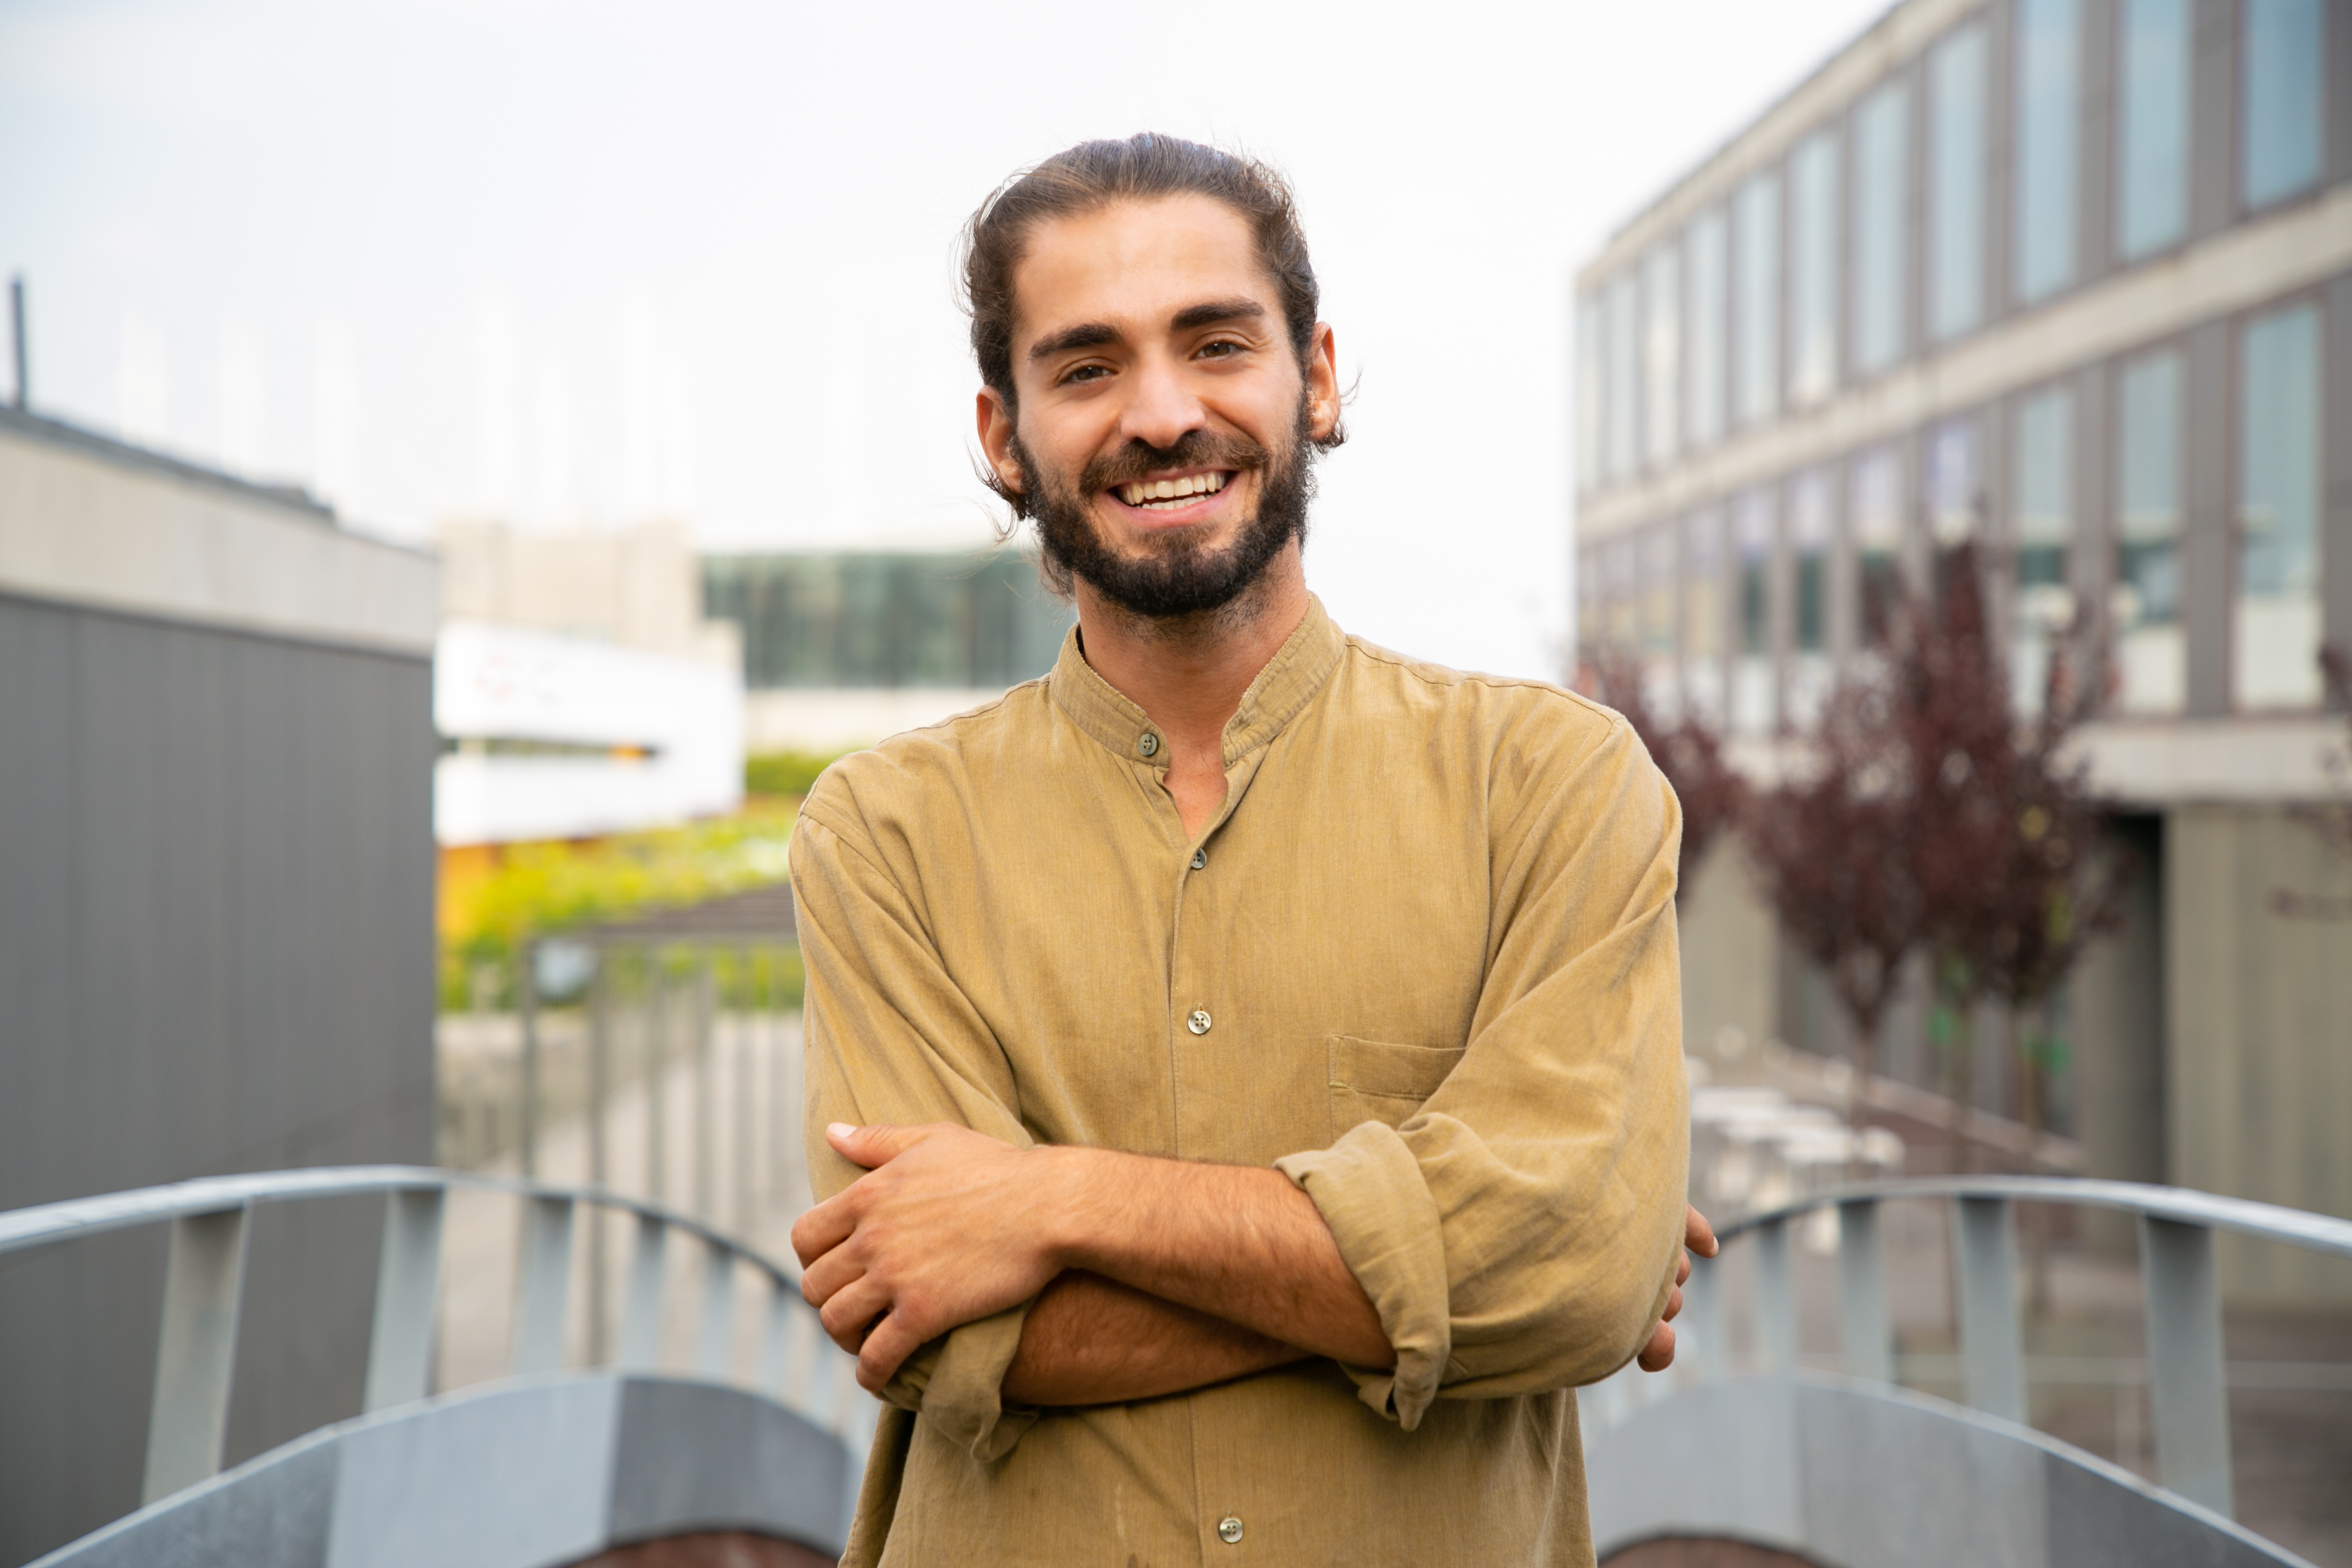 Happy joyful hipster guy posing for camera outside. Young man in casual with bun and stubble standing in urban settings, looking at camera and smiling. Male portrait concept